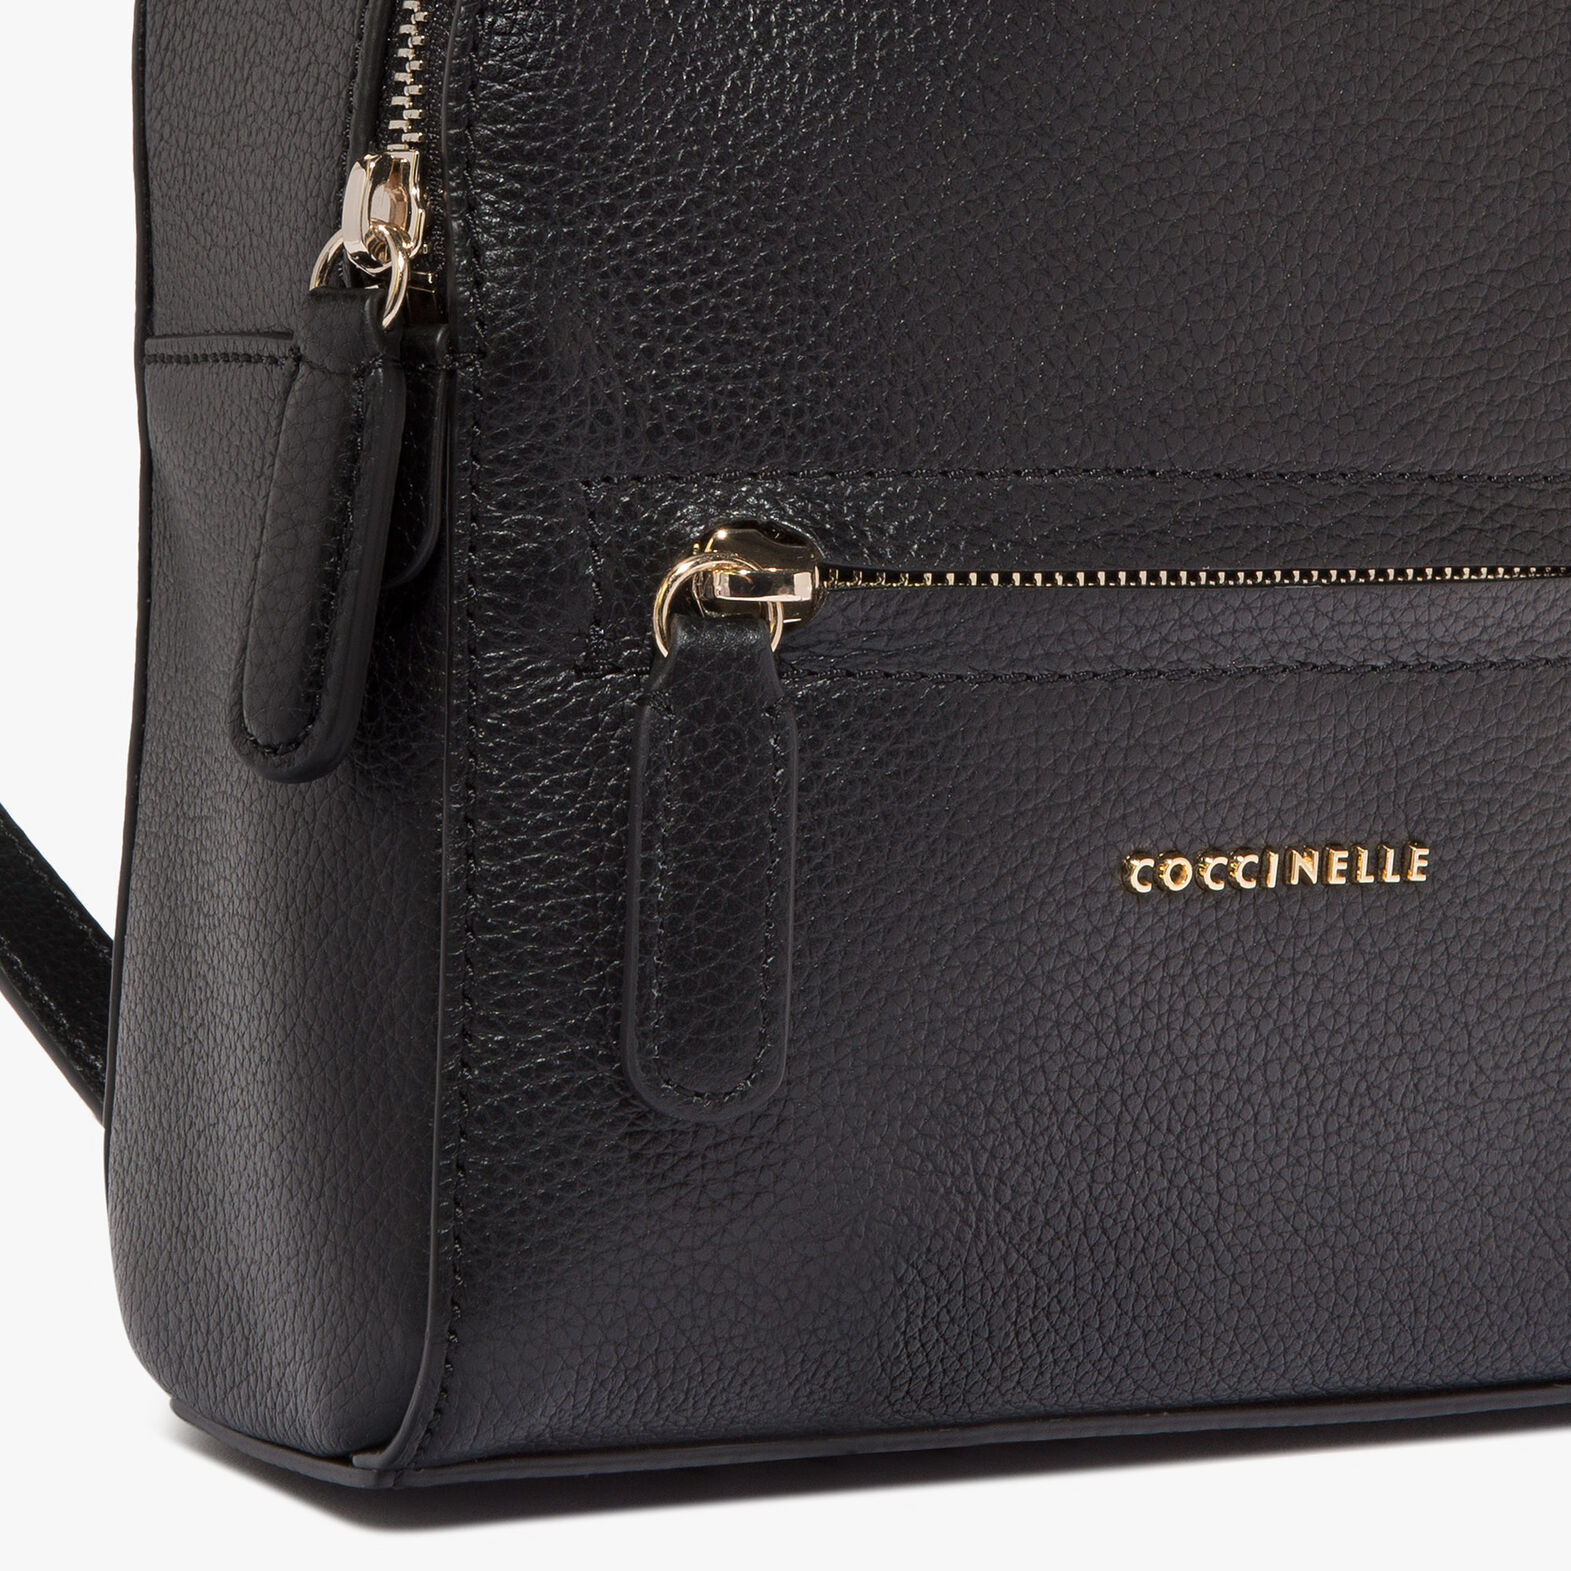 Coccinelle Clementine leather mini backpack